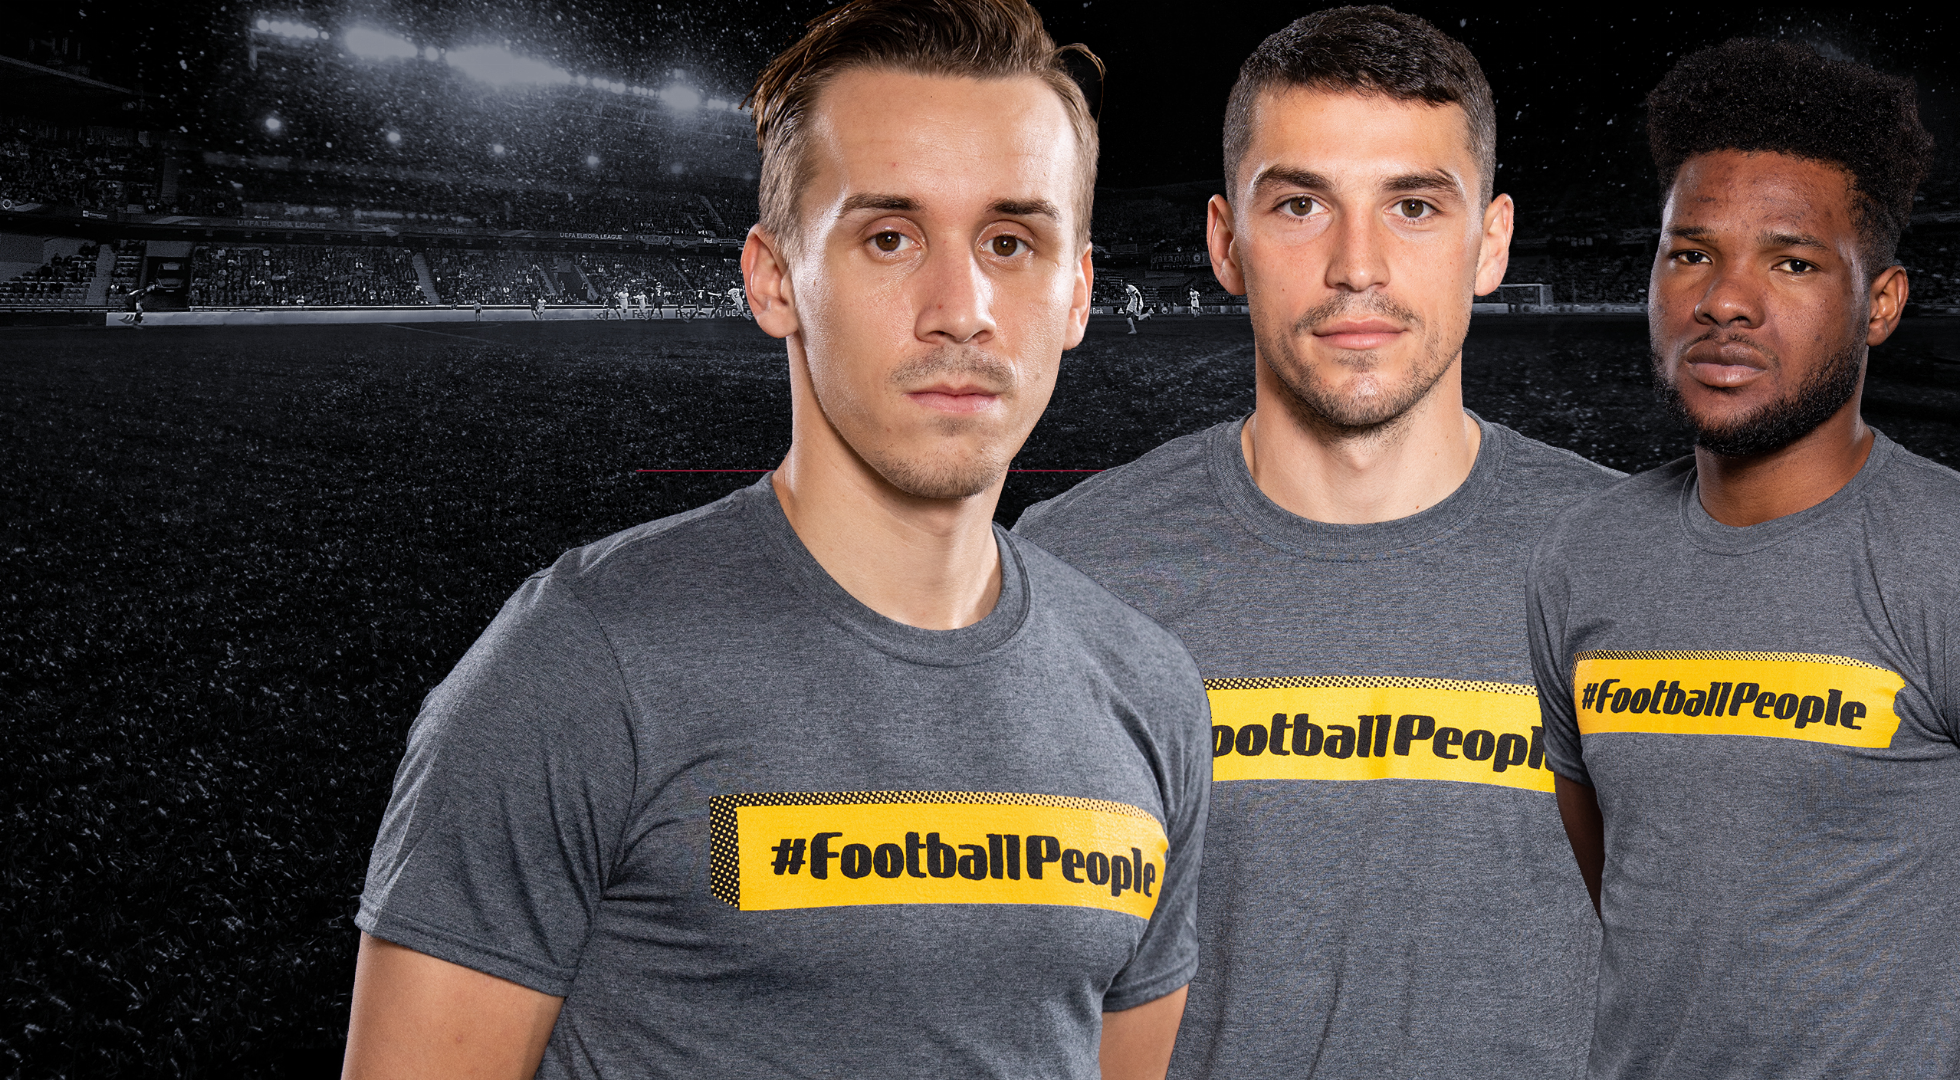 We are #FootballPeople